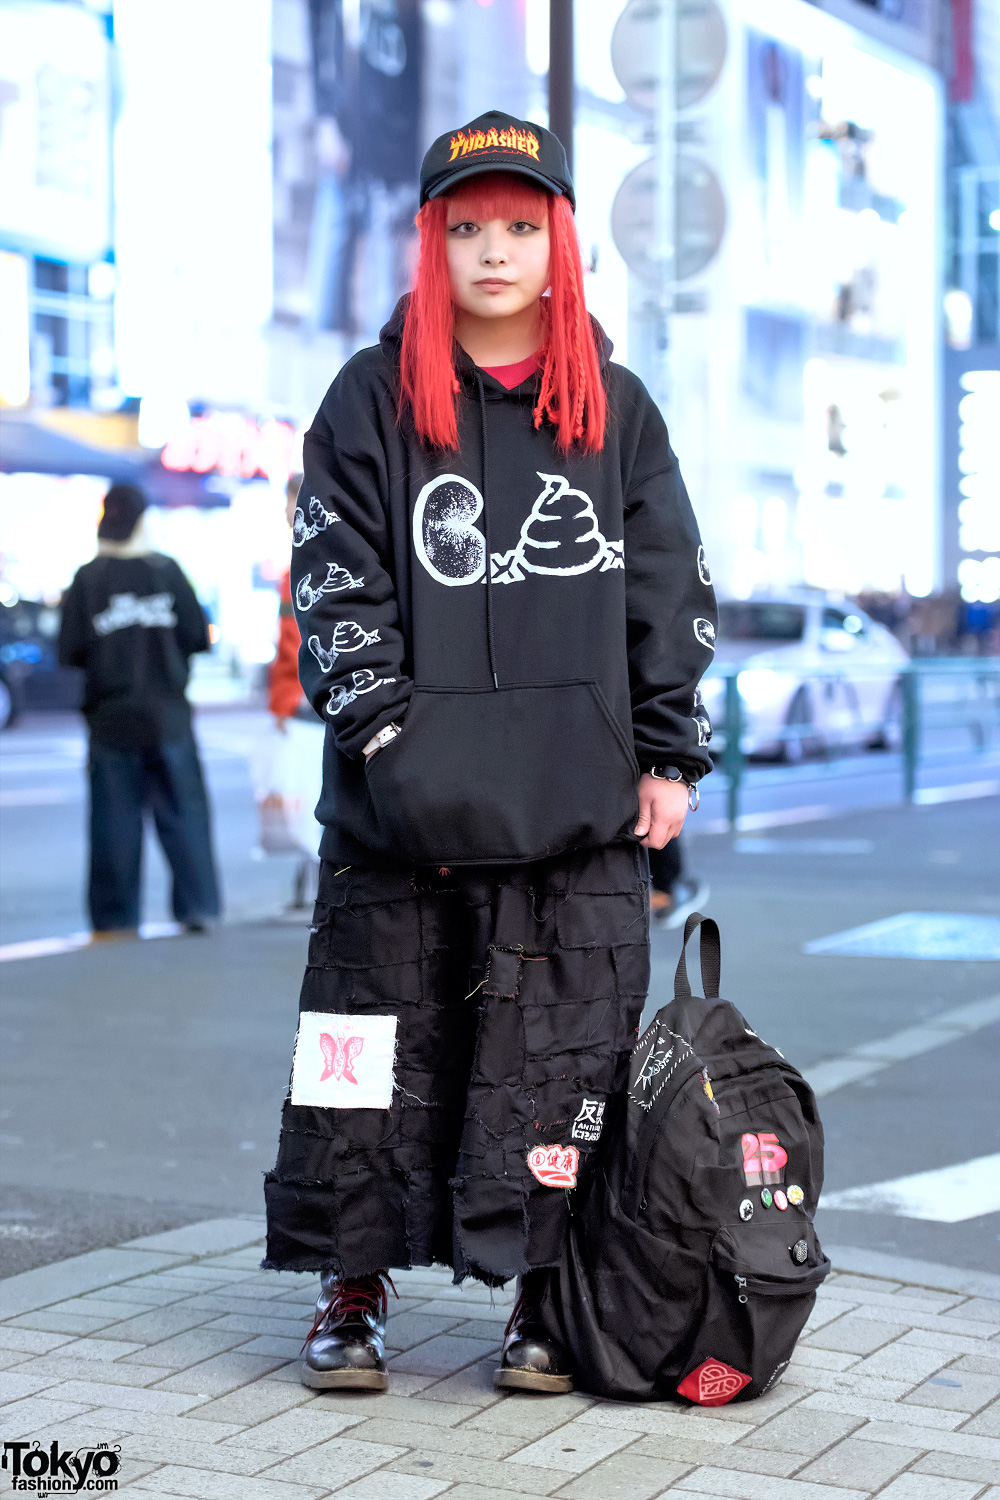 Crust Punk Skirt Hentaiworks Backpack Amp Punk Do Hoodie In